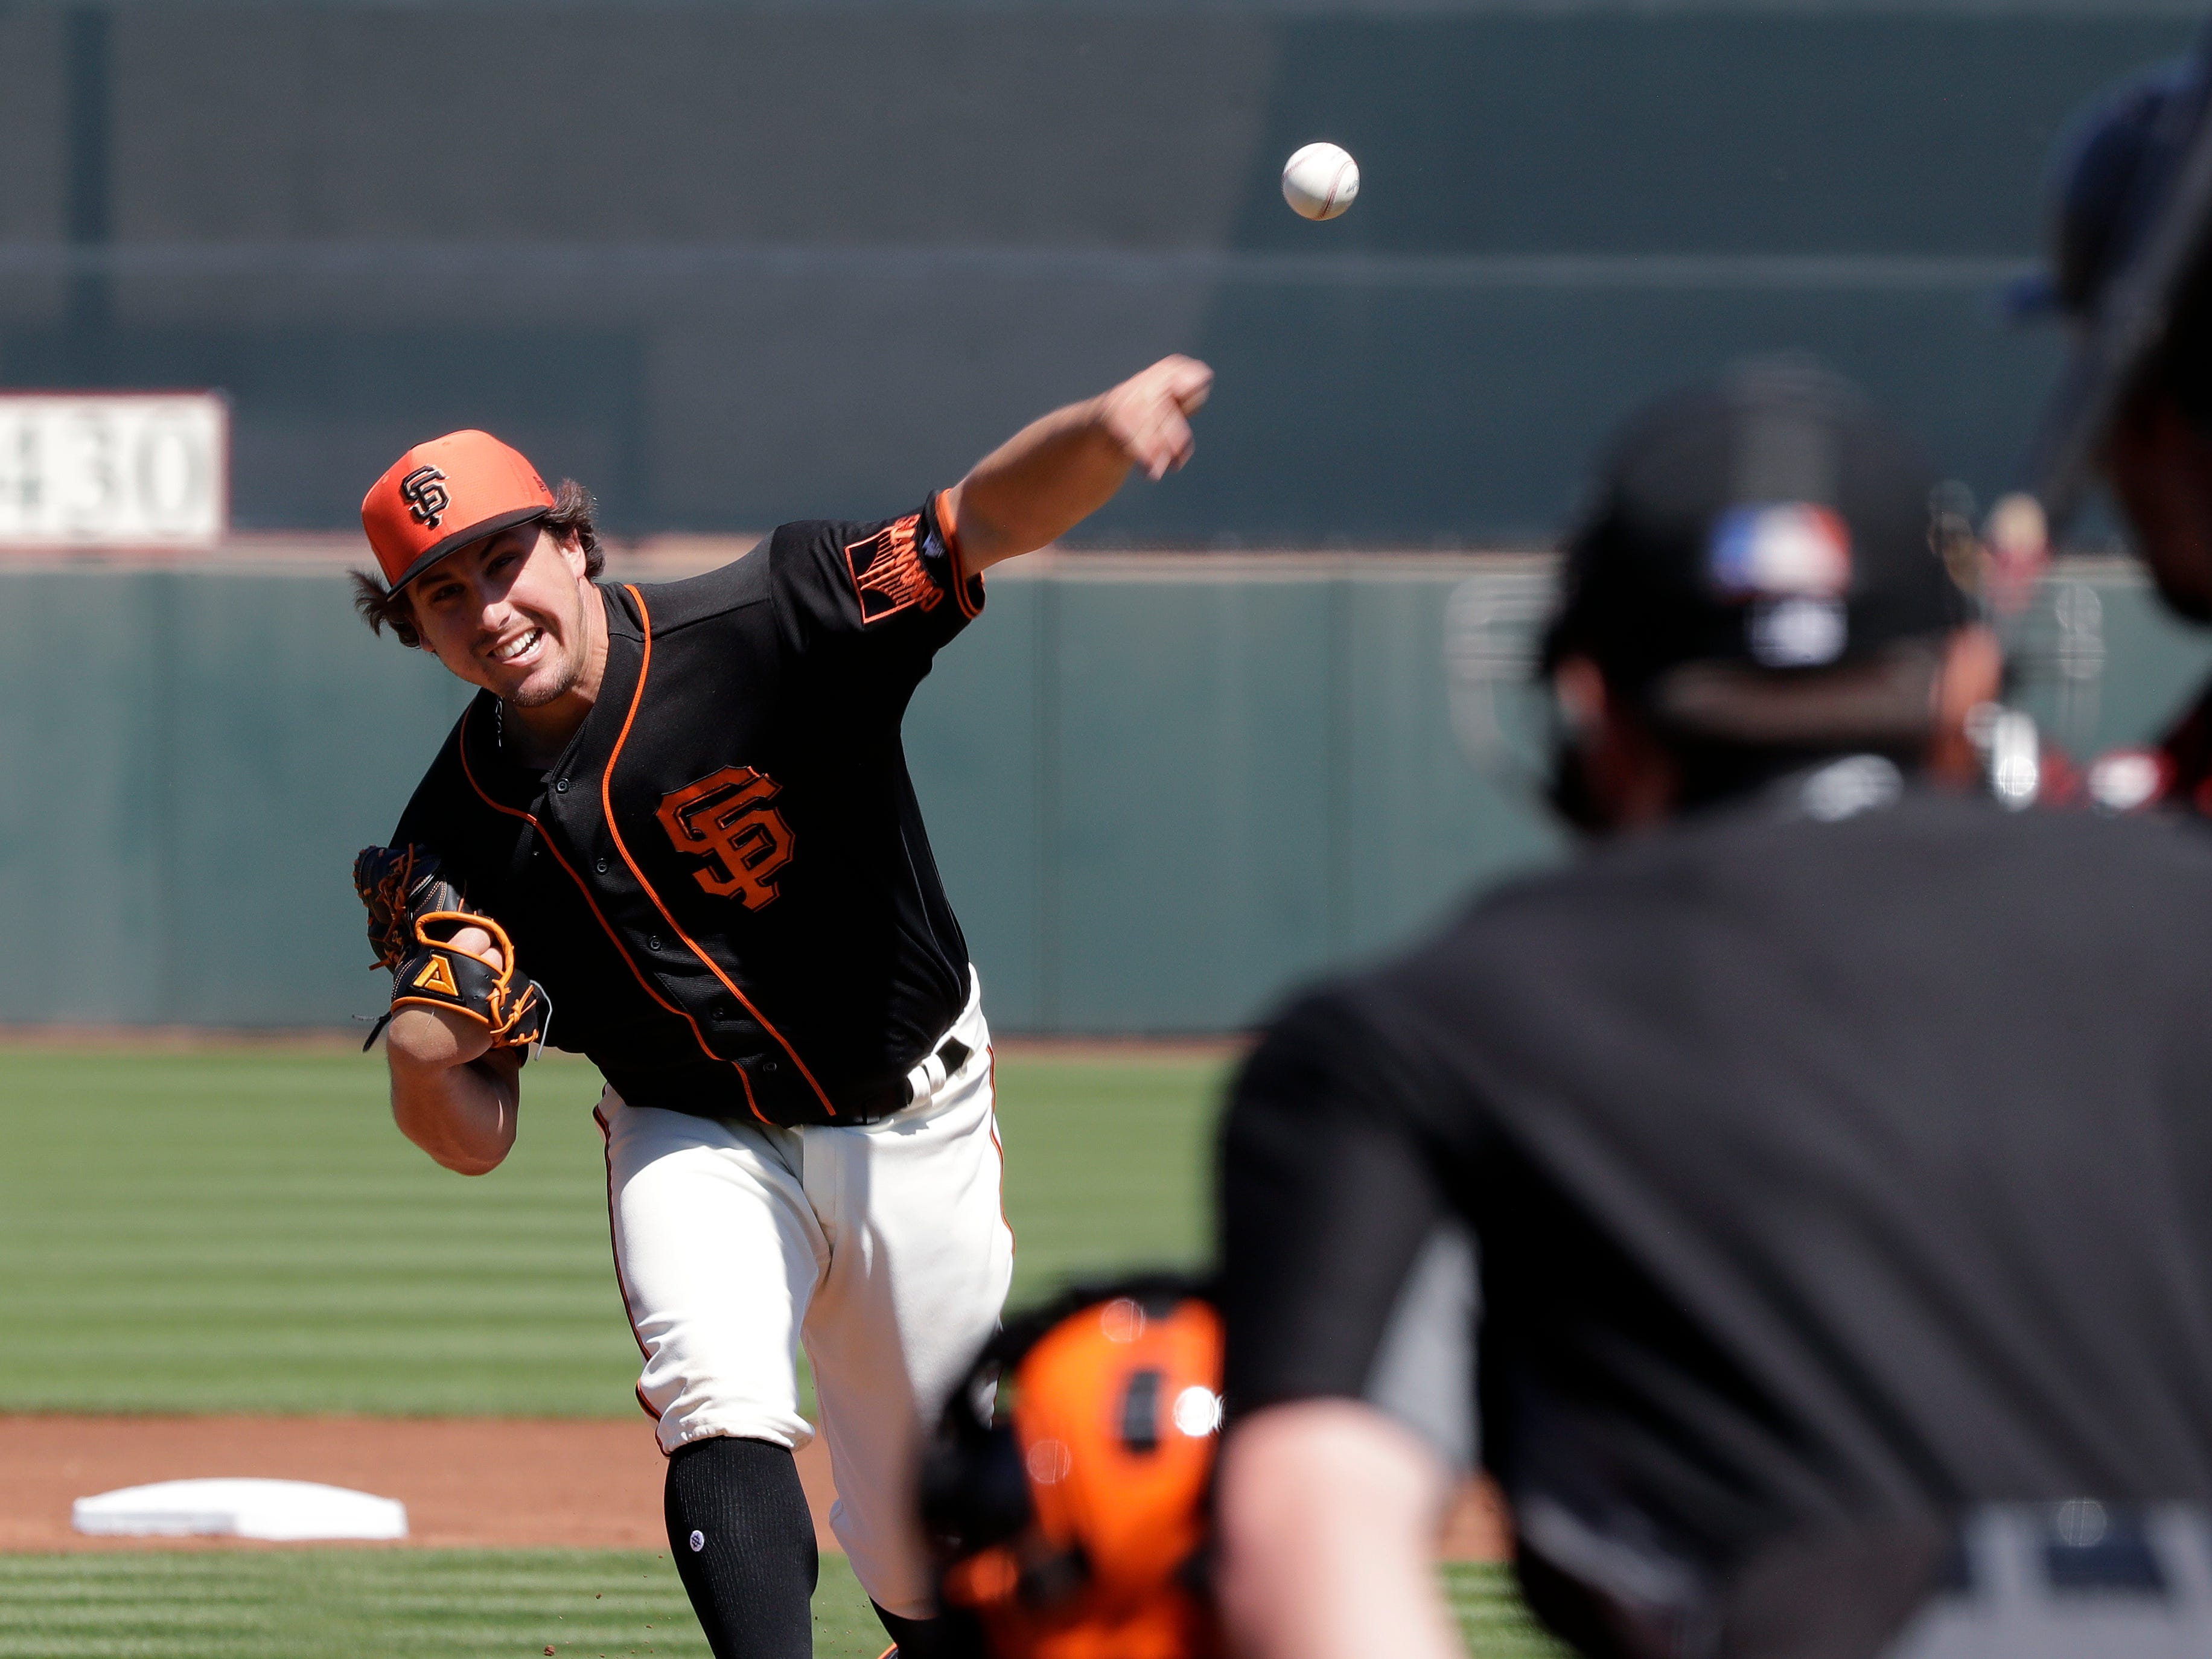 San Francisco Giants starting pitcher Derek Holland, left, throws against Arizona Diamondbacks' Jarrod Dyson in the first inning of a spring training baseball game Saturday, March 23, 2019, in Scottsdale, Ariz.